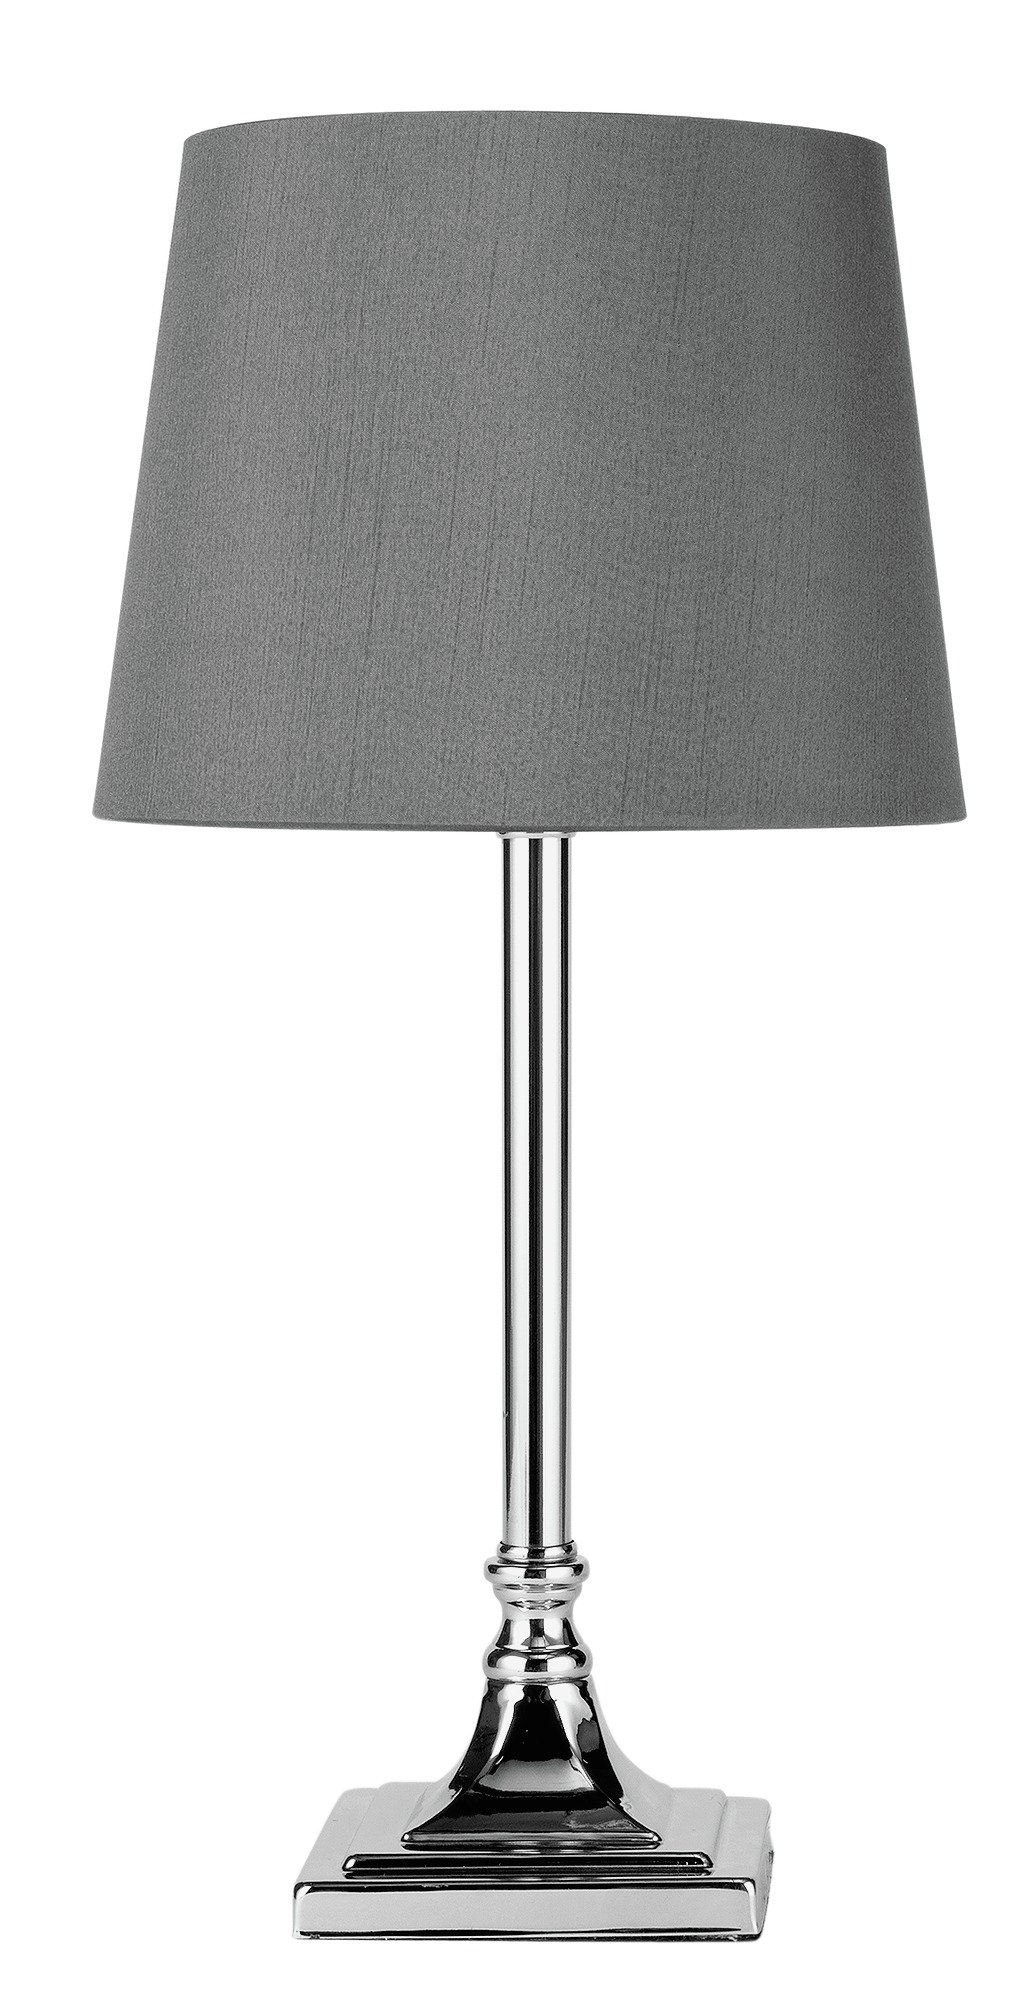 Buy Bedside lamps Lamp shades at Argos.co.uk - Your Online Shop for Home and garden.